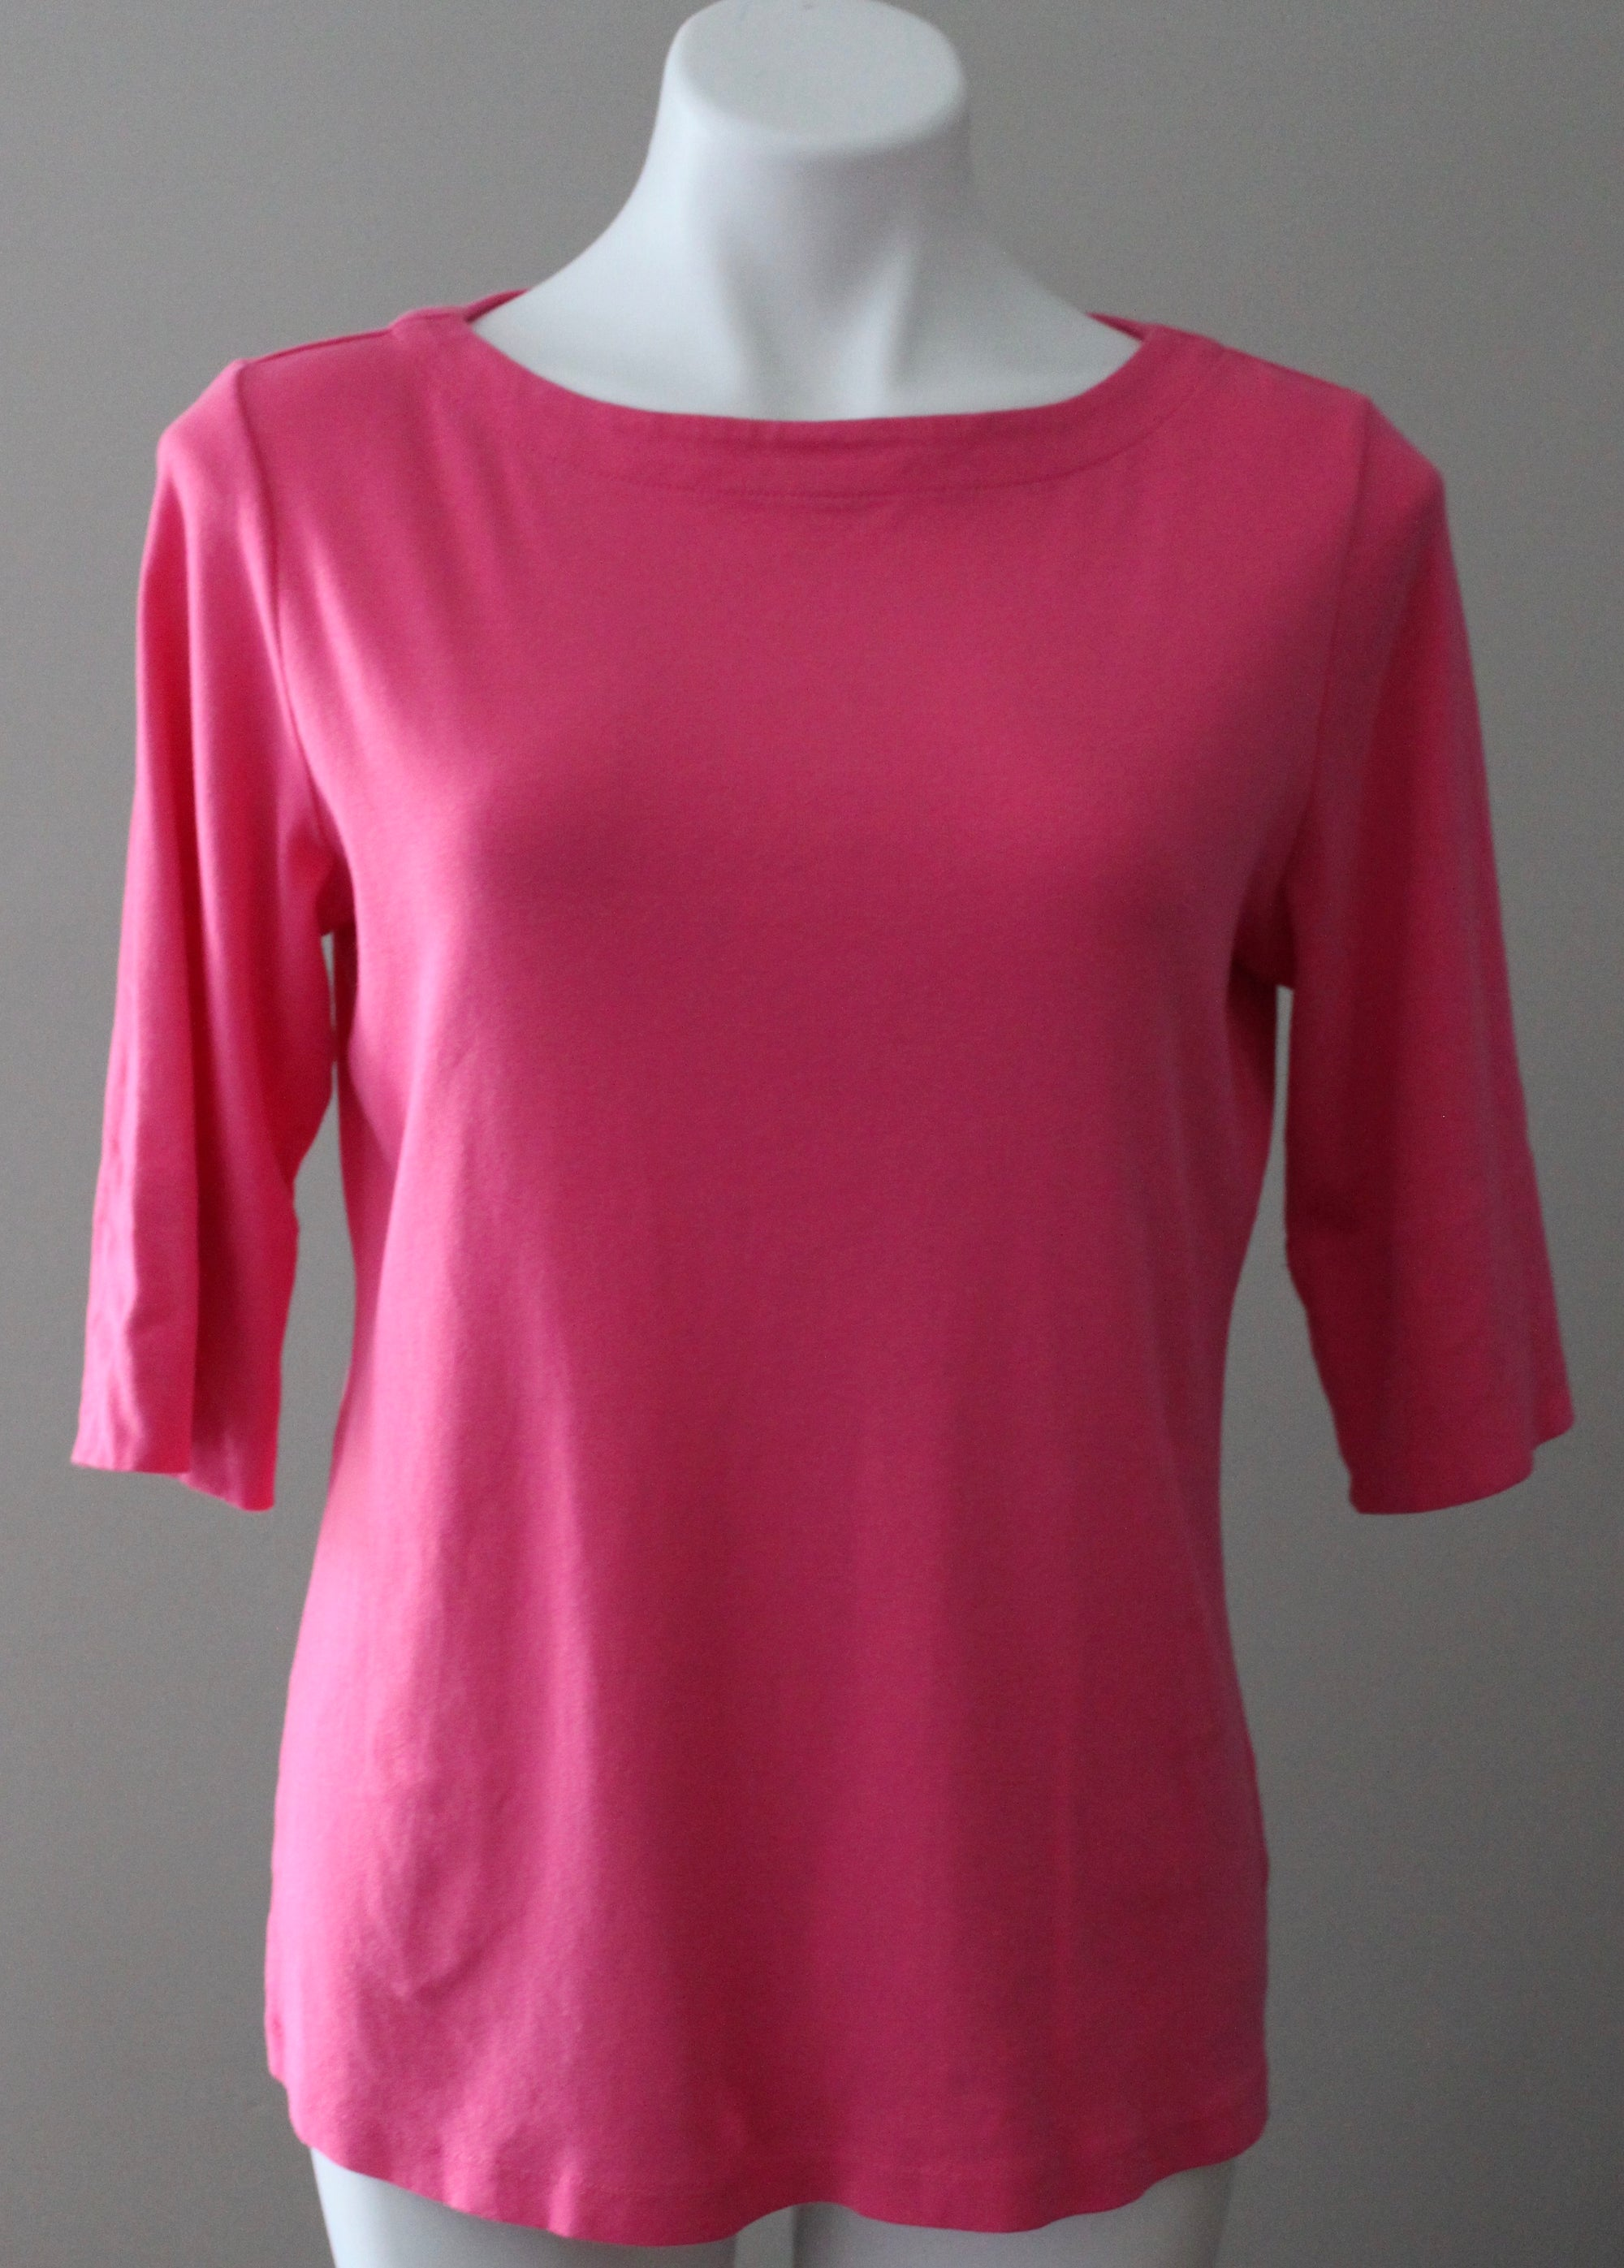 CHRISTOPHER BANKS Light Spring berry pink boatneck tee